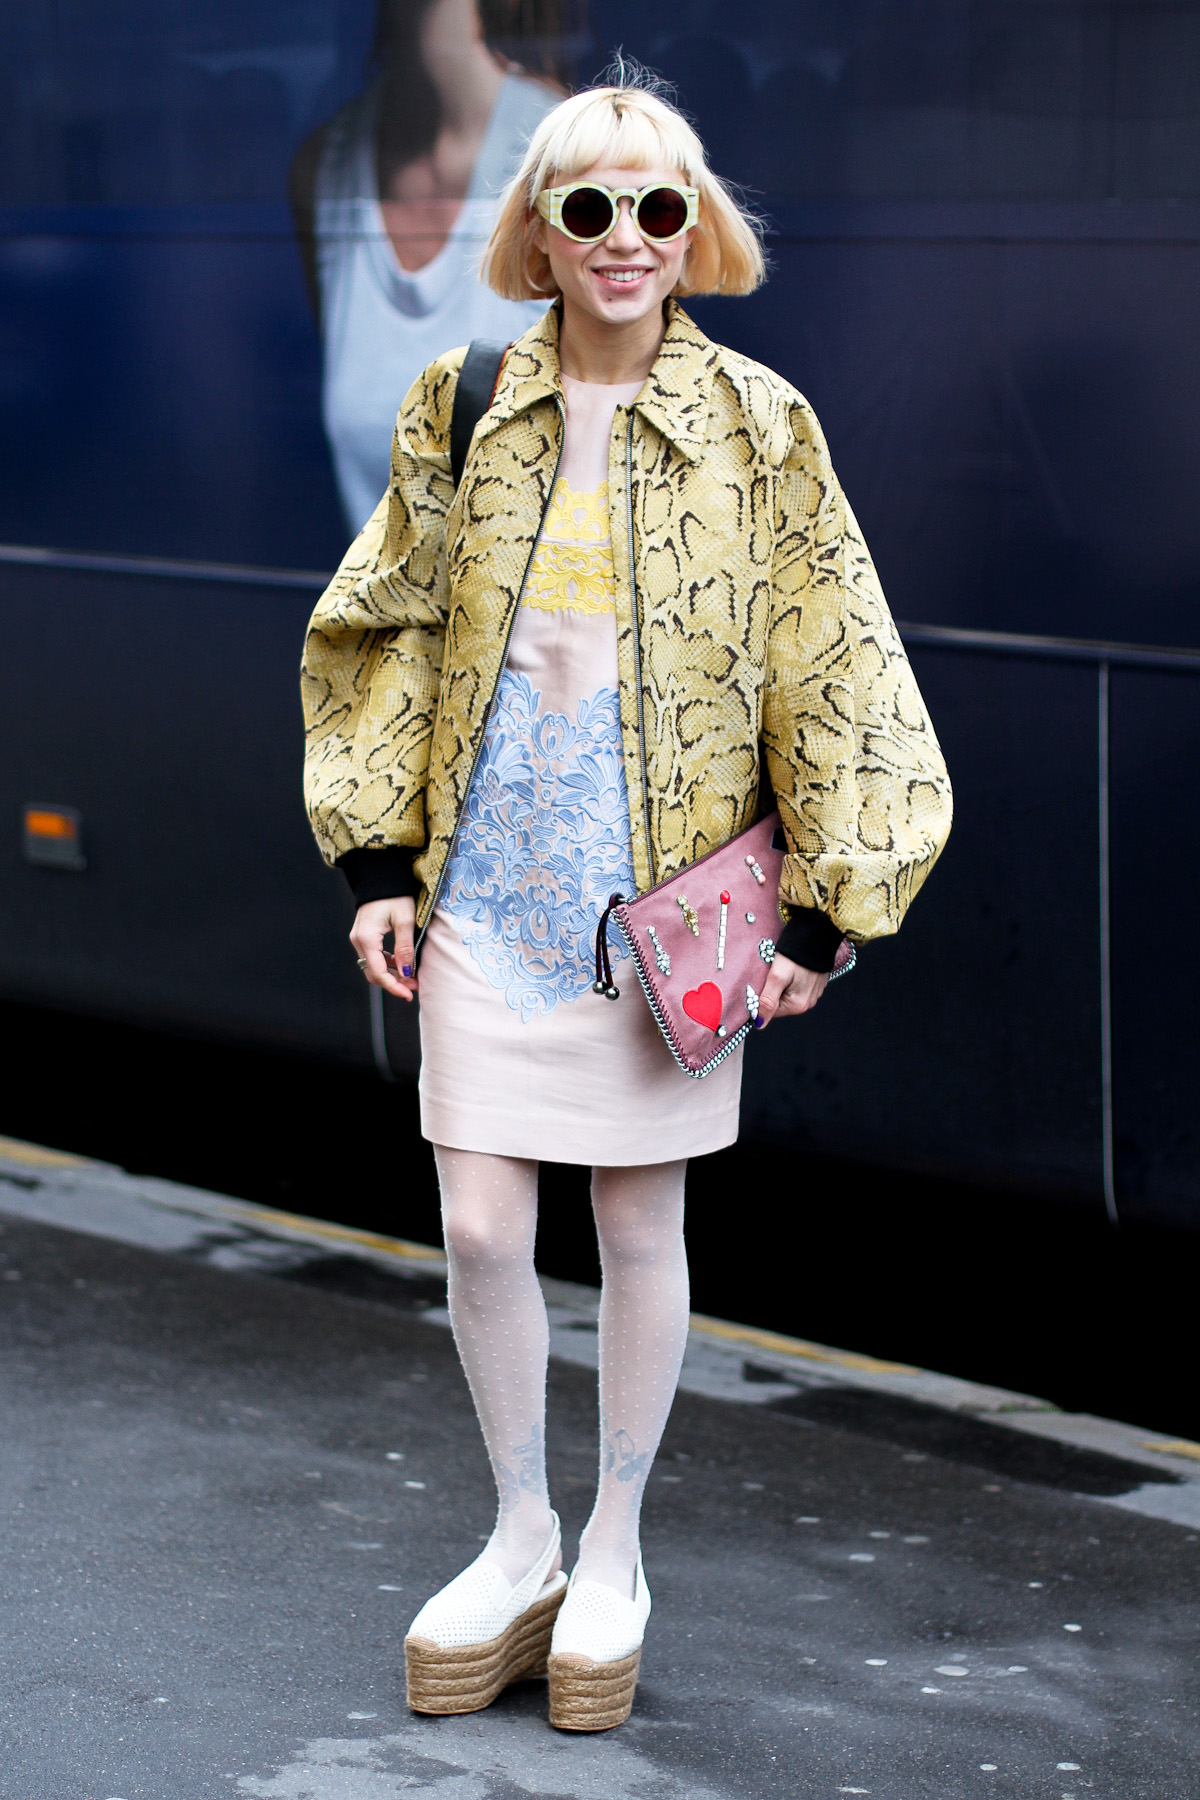 clochet - outfit- streetstyle - paris fashion week - miranda makaroff